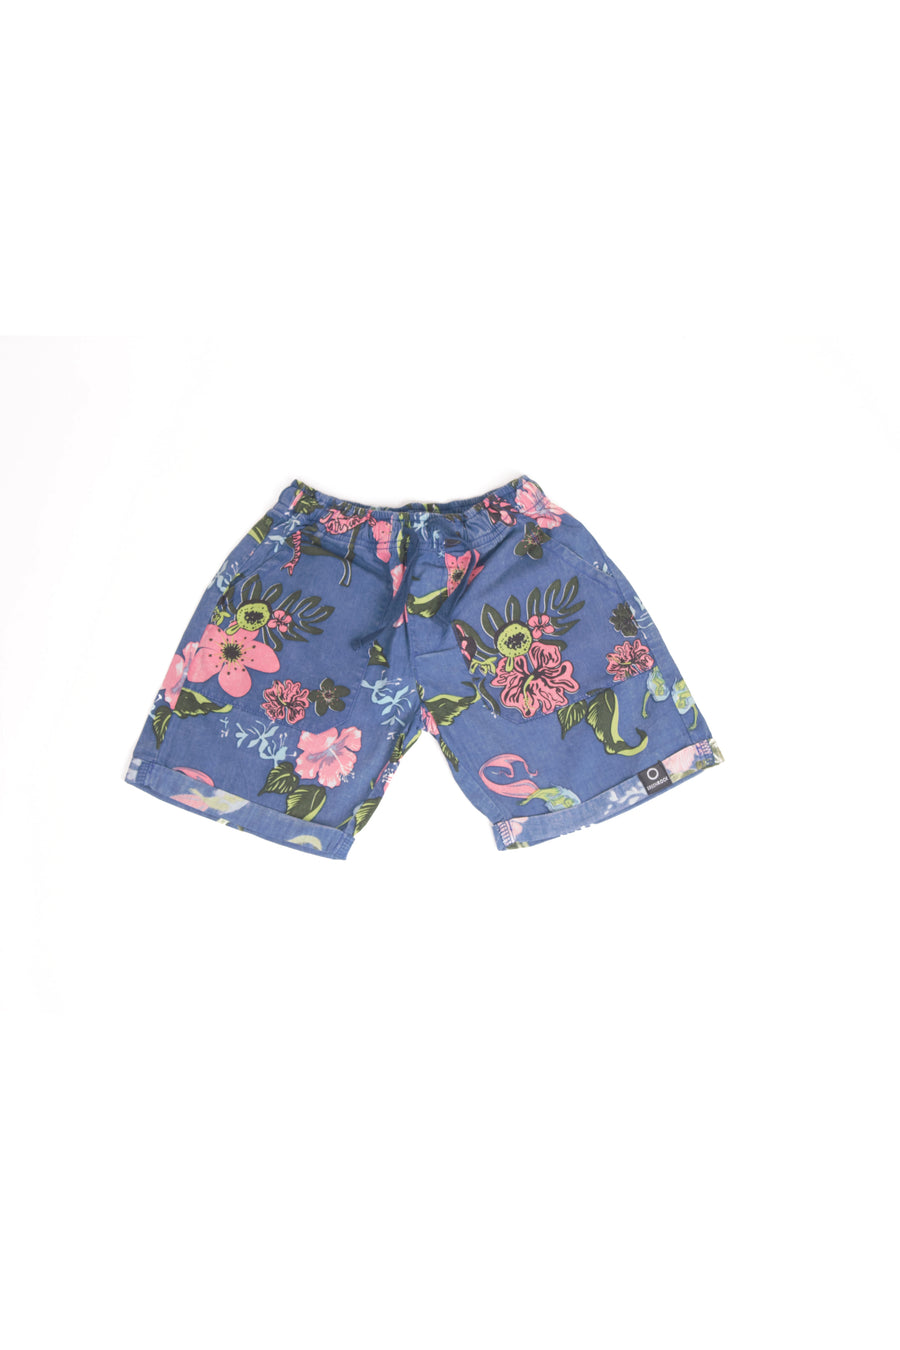 Short Kids Mermaid Royal Blue - Greenrock Indonesia